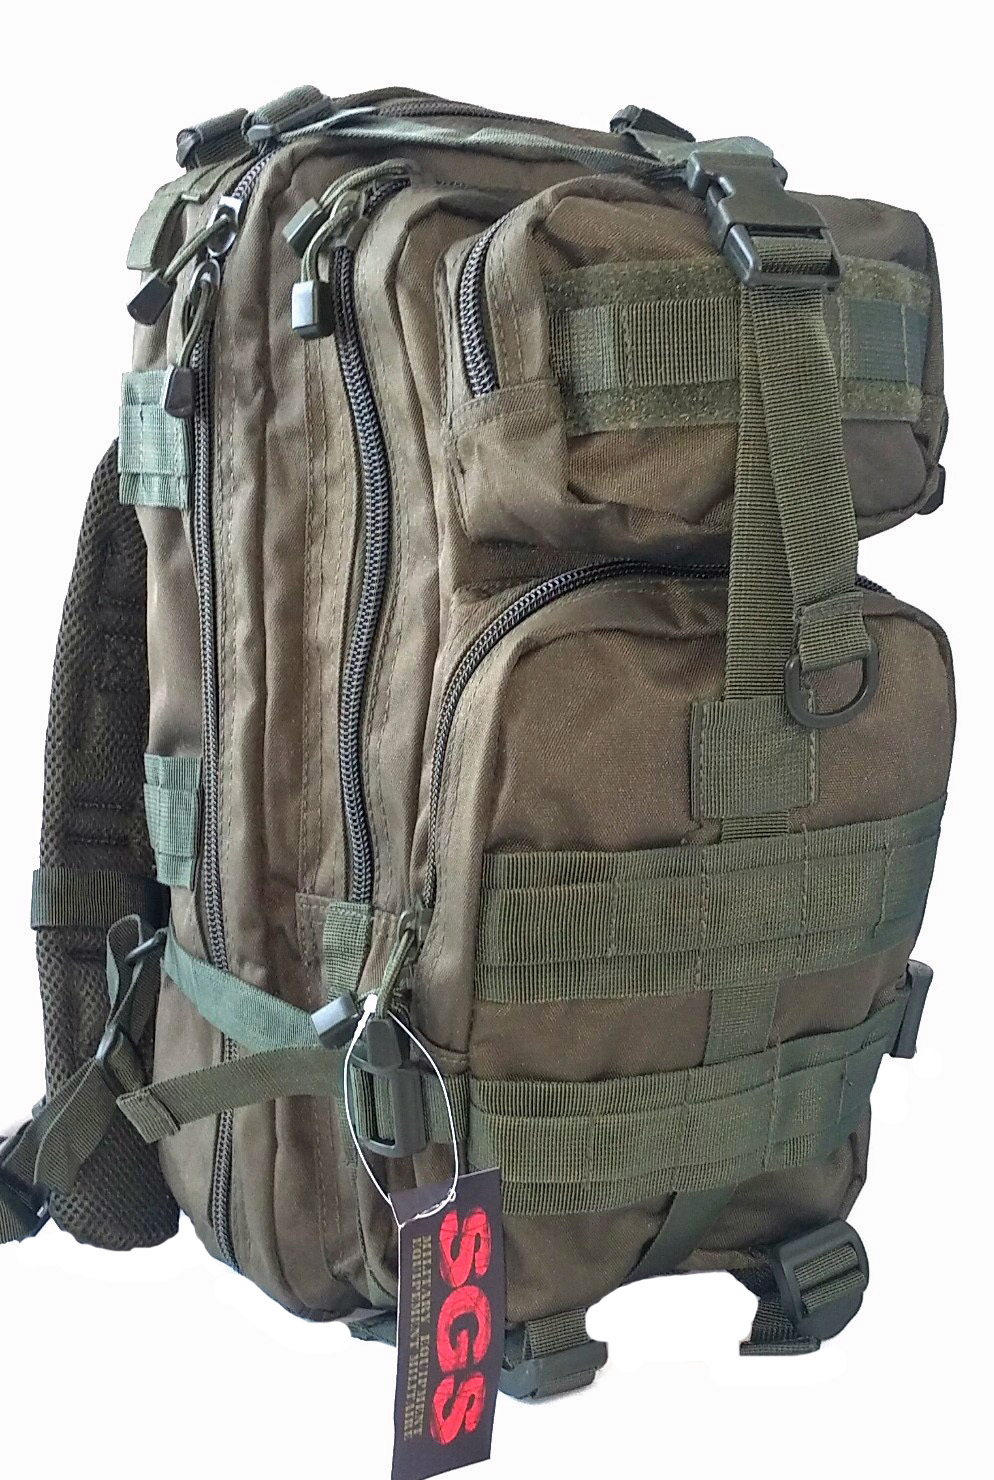 SGS Olive drab tactical assault pack